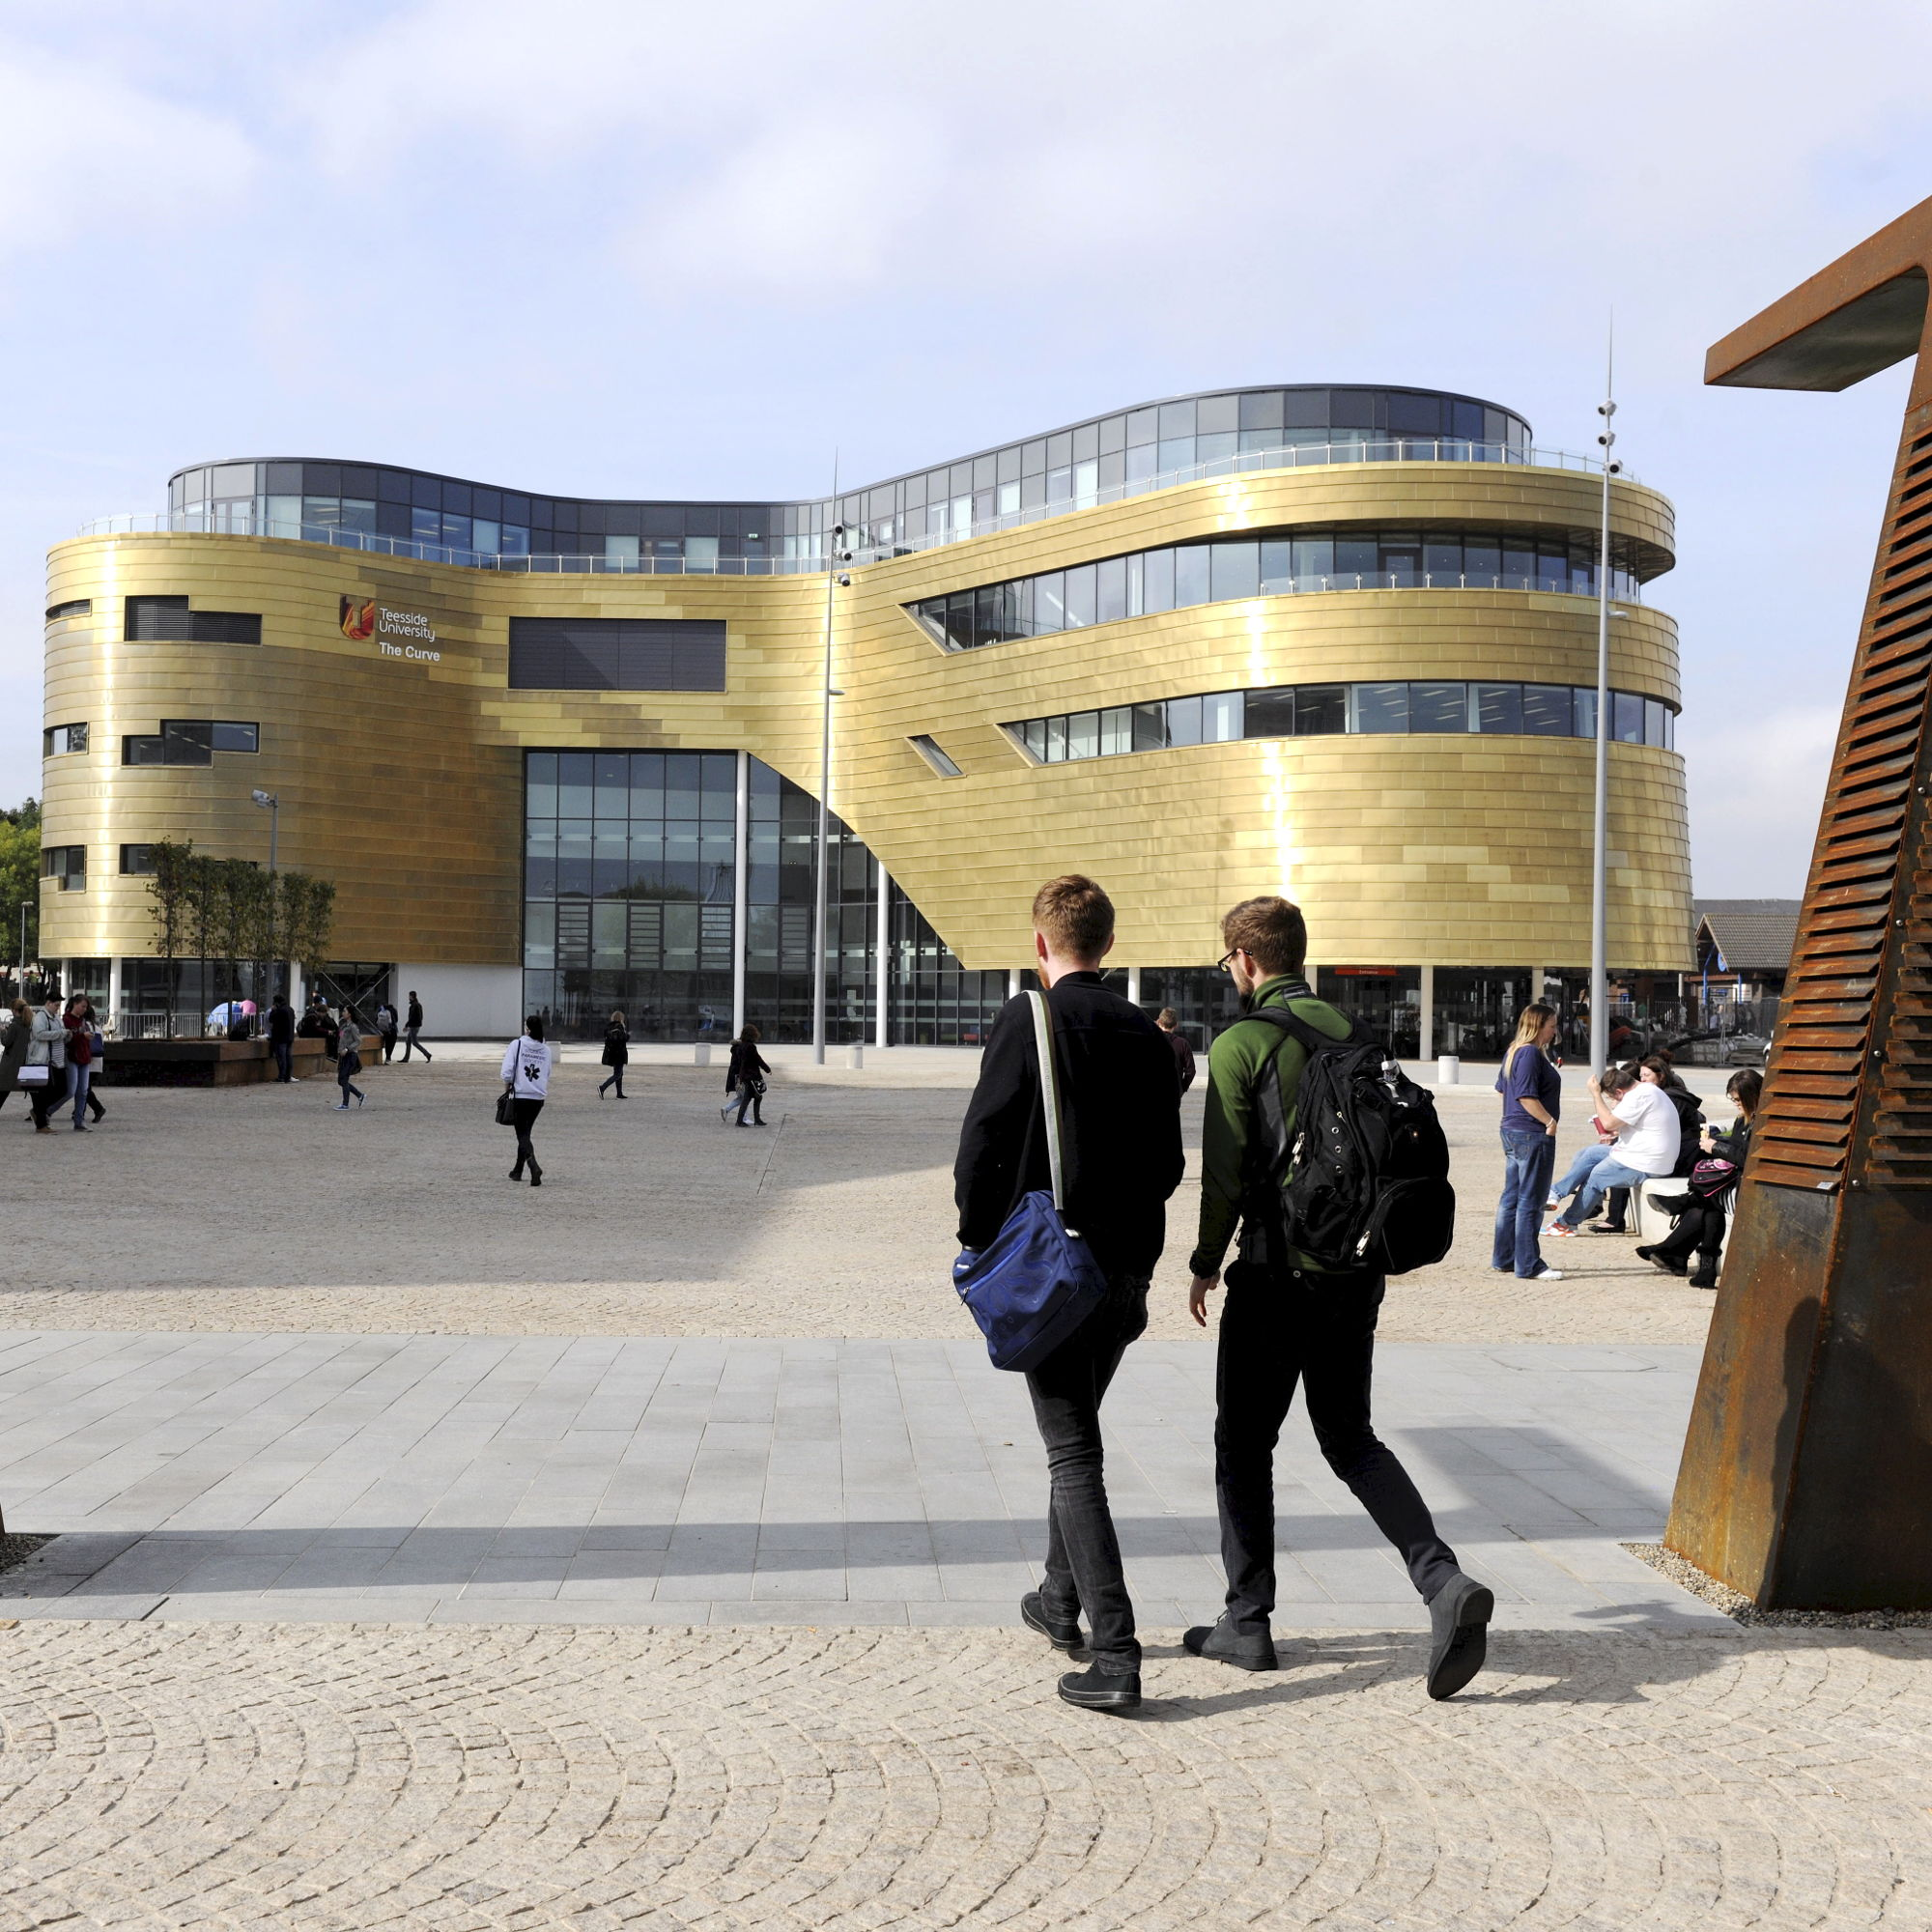 A photo of people at university which links to a page about high quality education